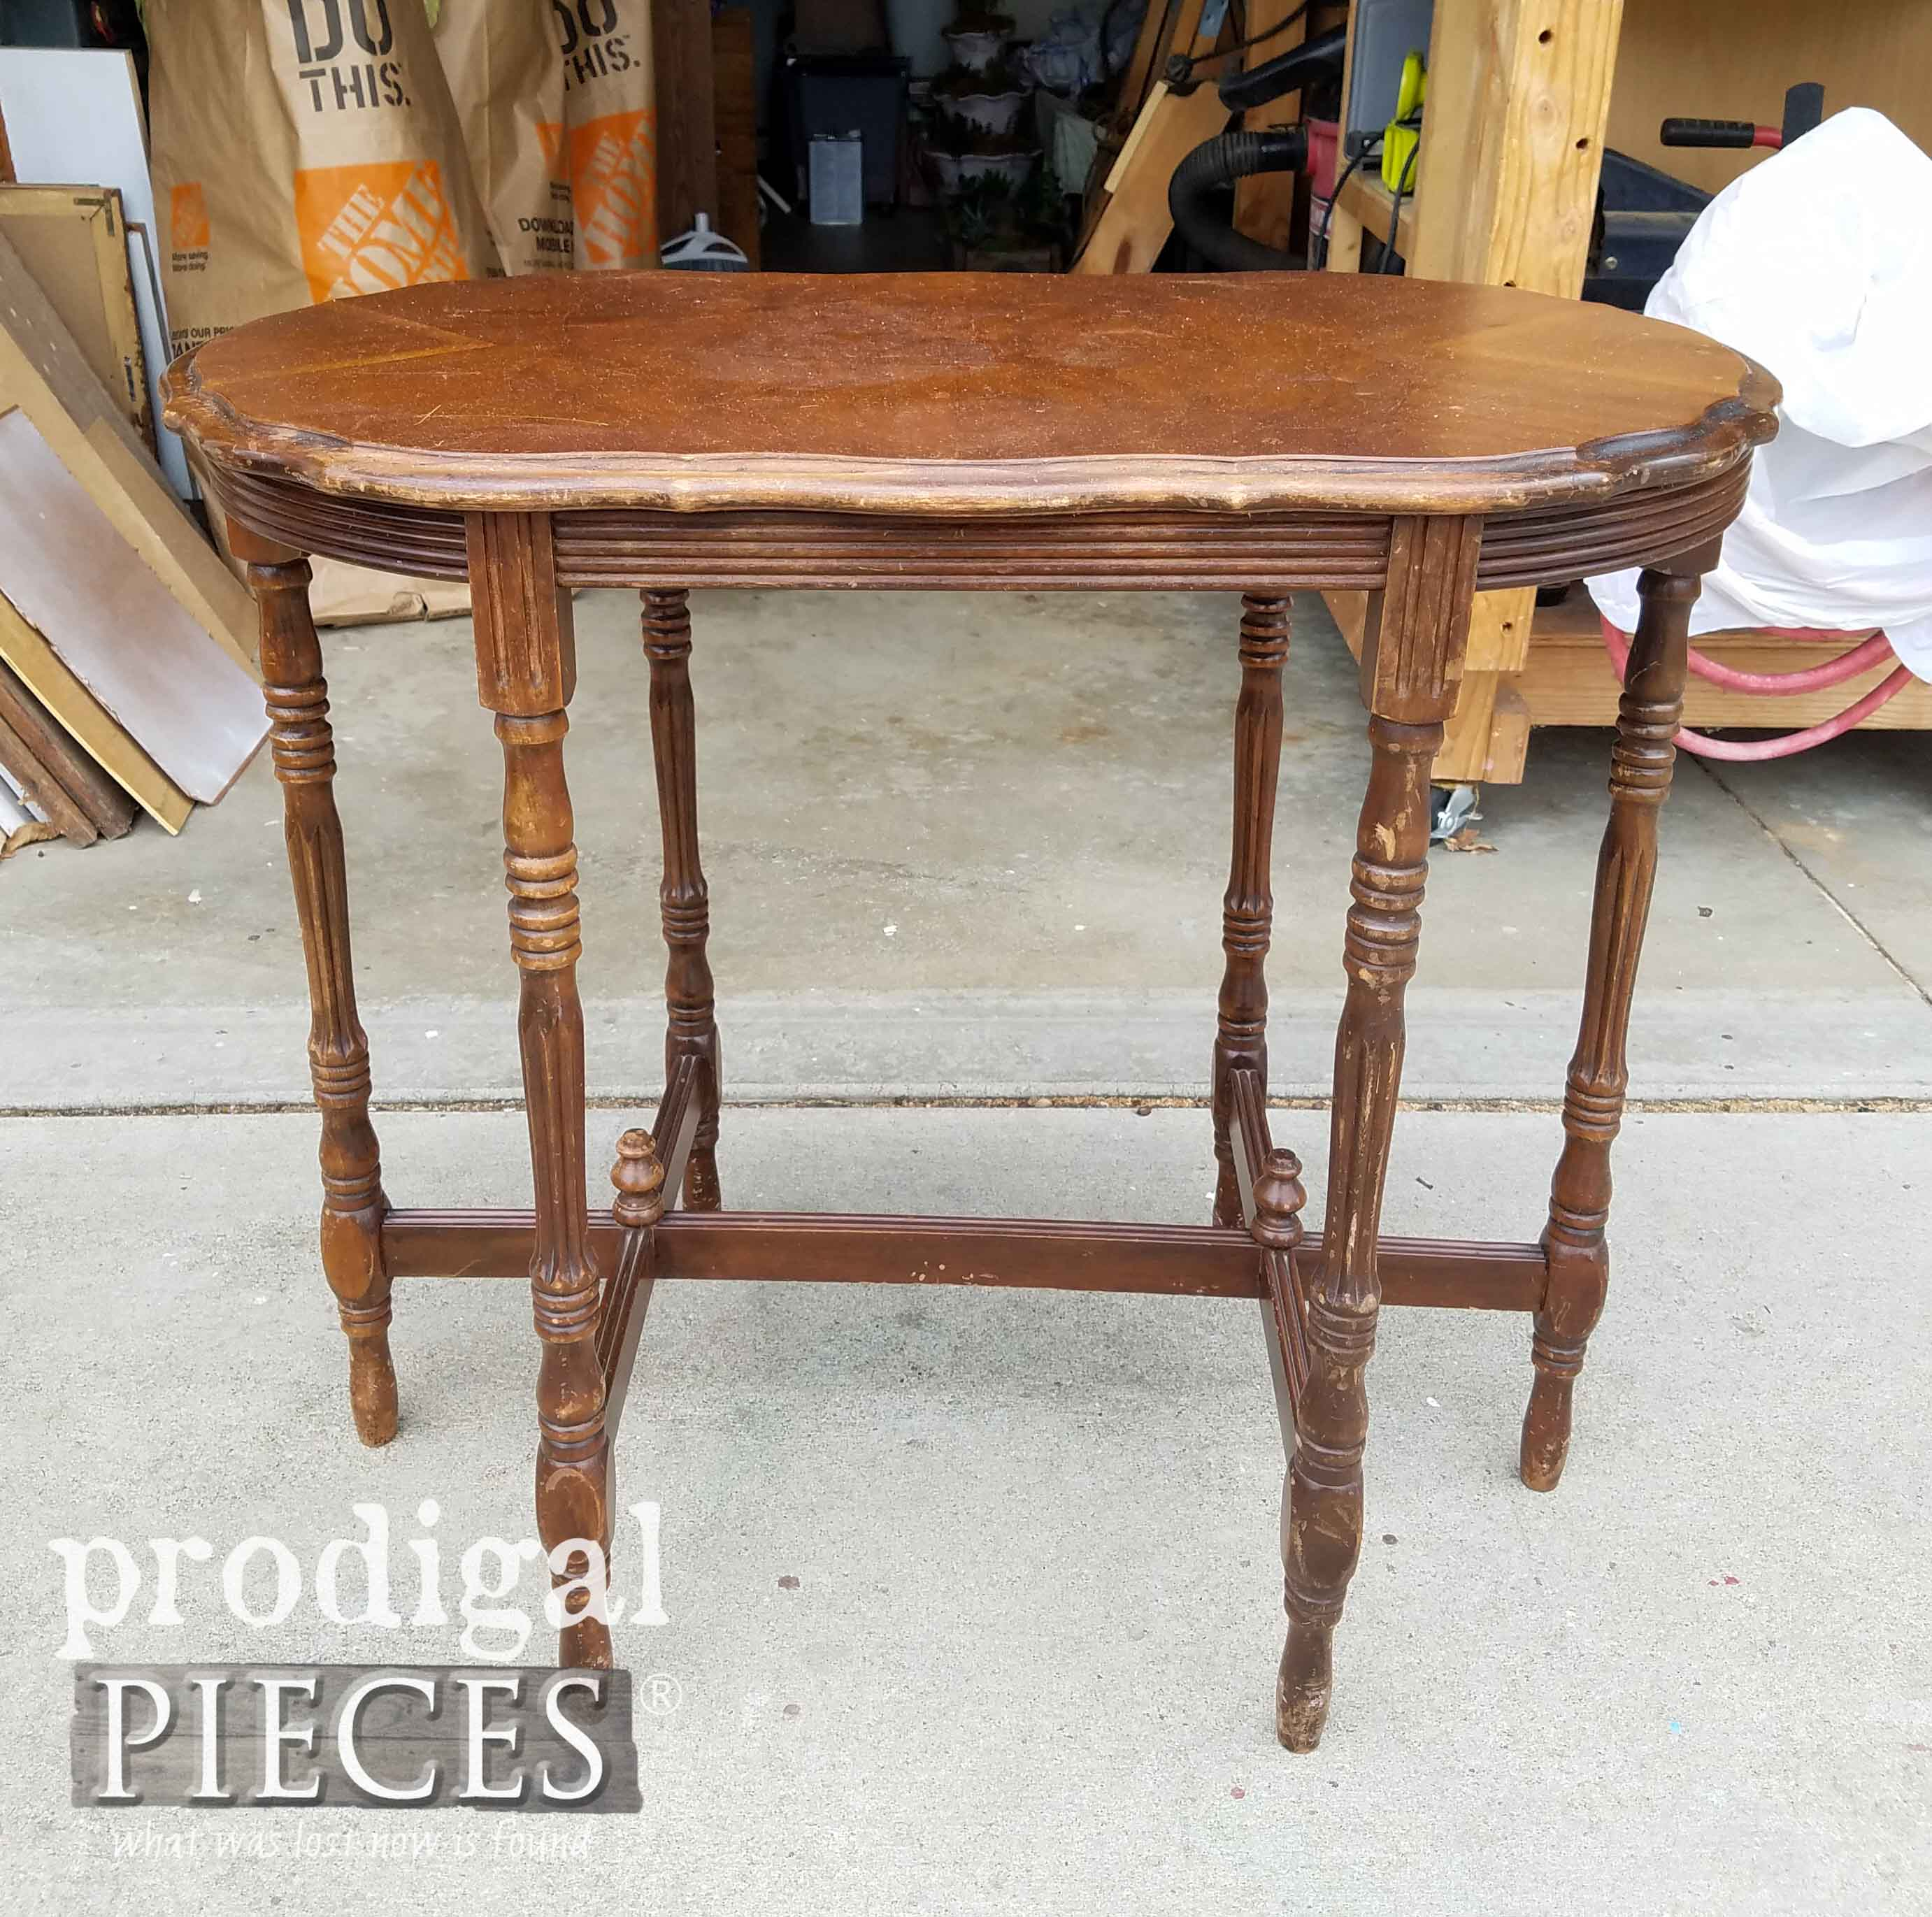 Antique Side Table Before Makeover by Prodigal Pieces | prodigalpieces.com